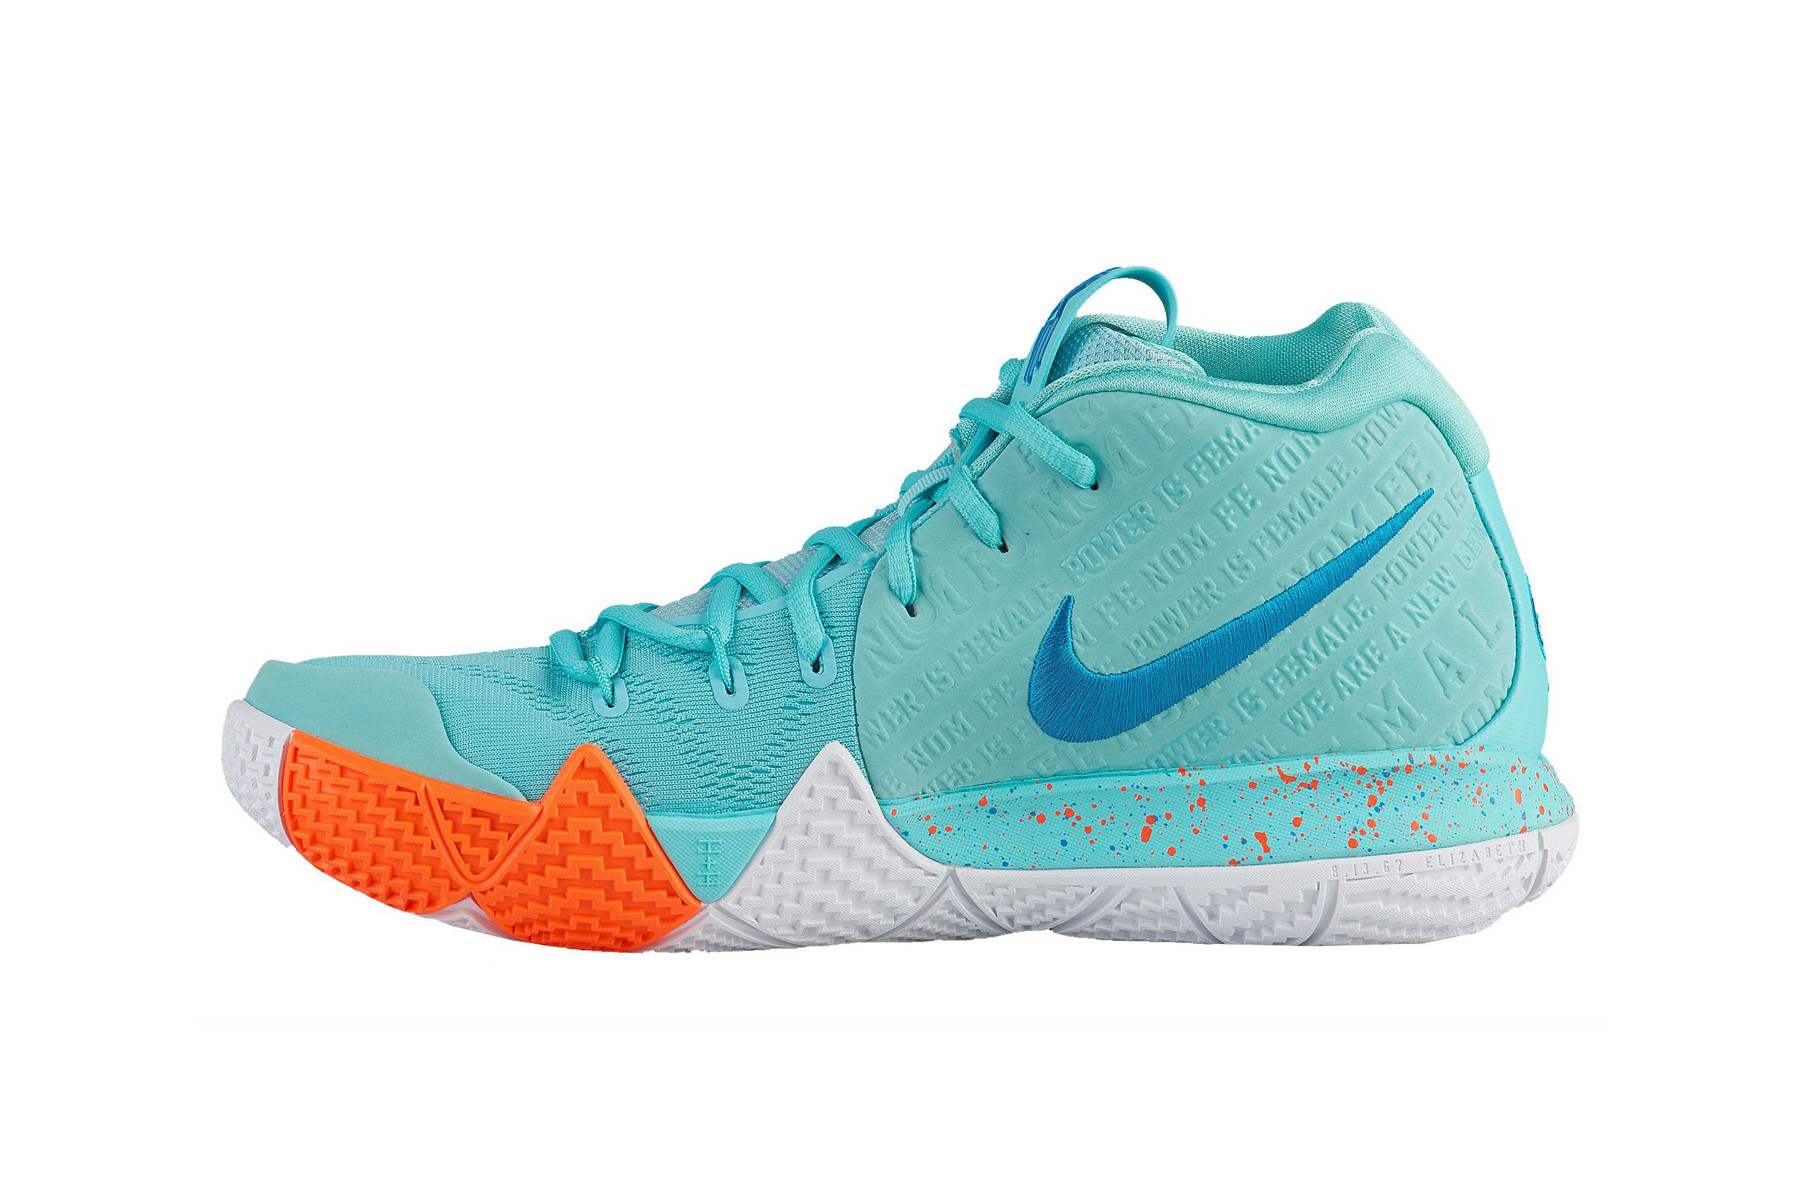 kyrie 4 release